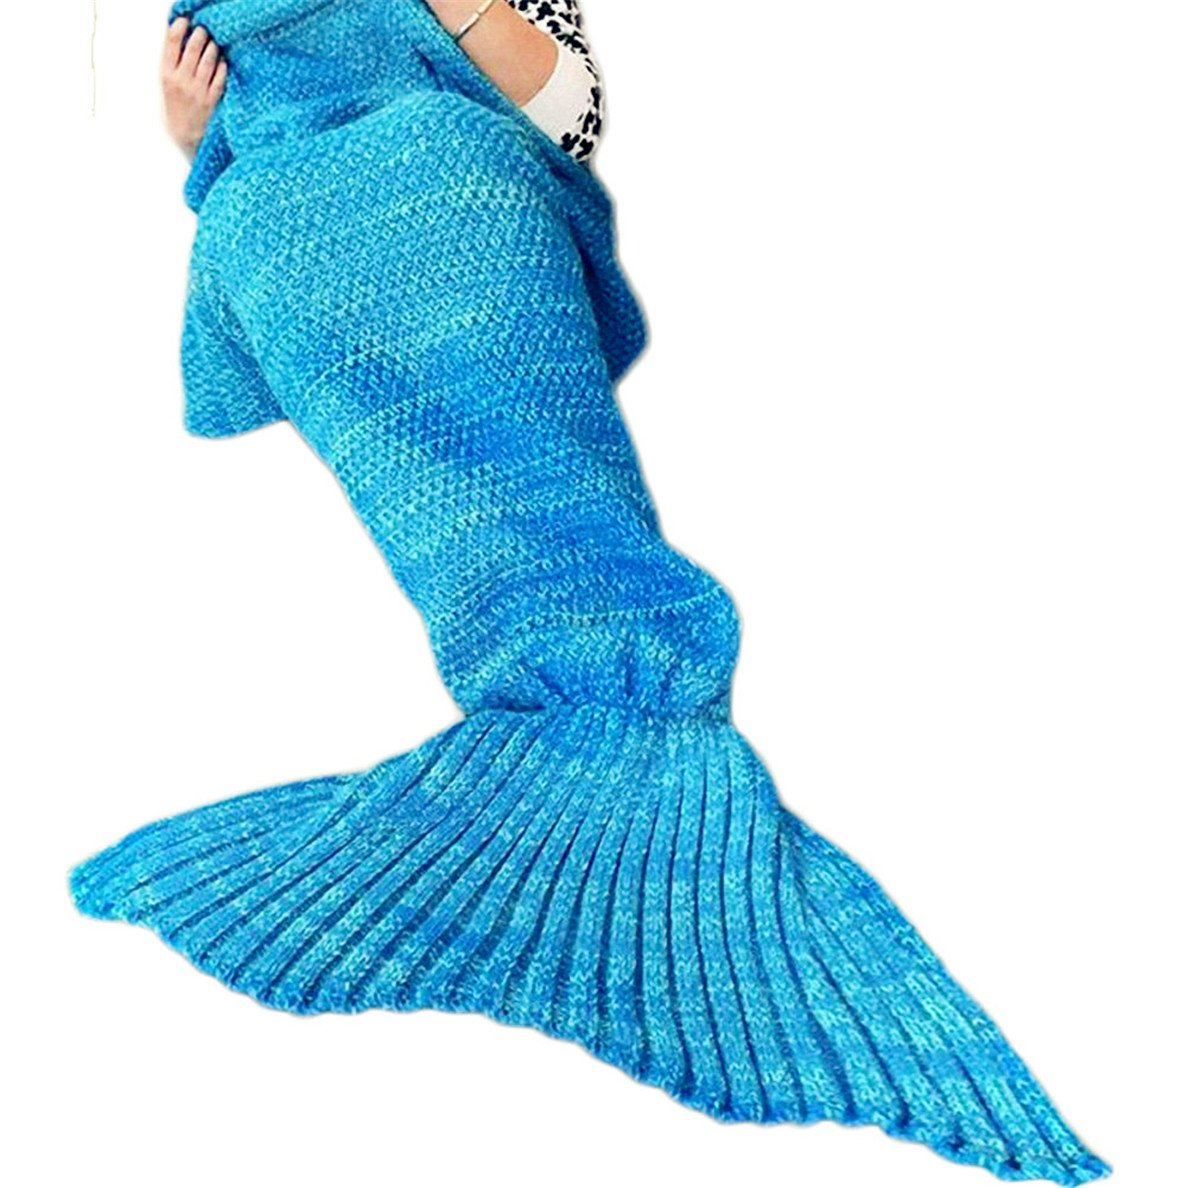 Mermaid Blanket Knitted Mermaid Sleeping Bag Warm Cozy Soft Mermaid Tail Blanket Pattern Women Fashion Crochet Sleeping Blanket Tail Blanket Mermaid Throw Blanket for Bed Sofa Couch Adults Blue